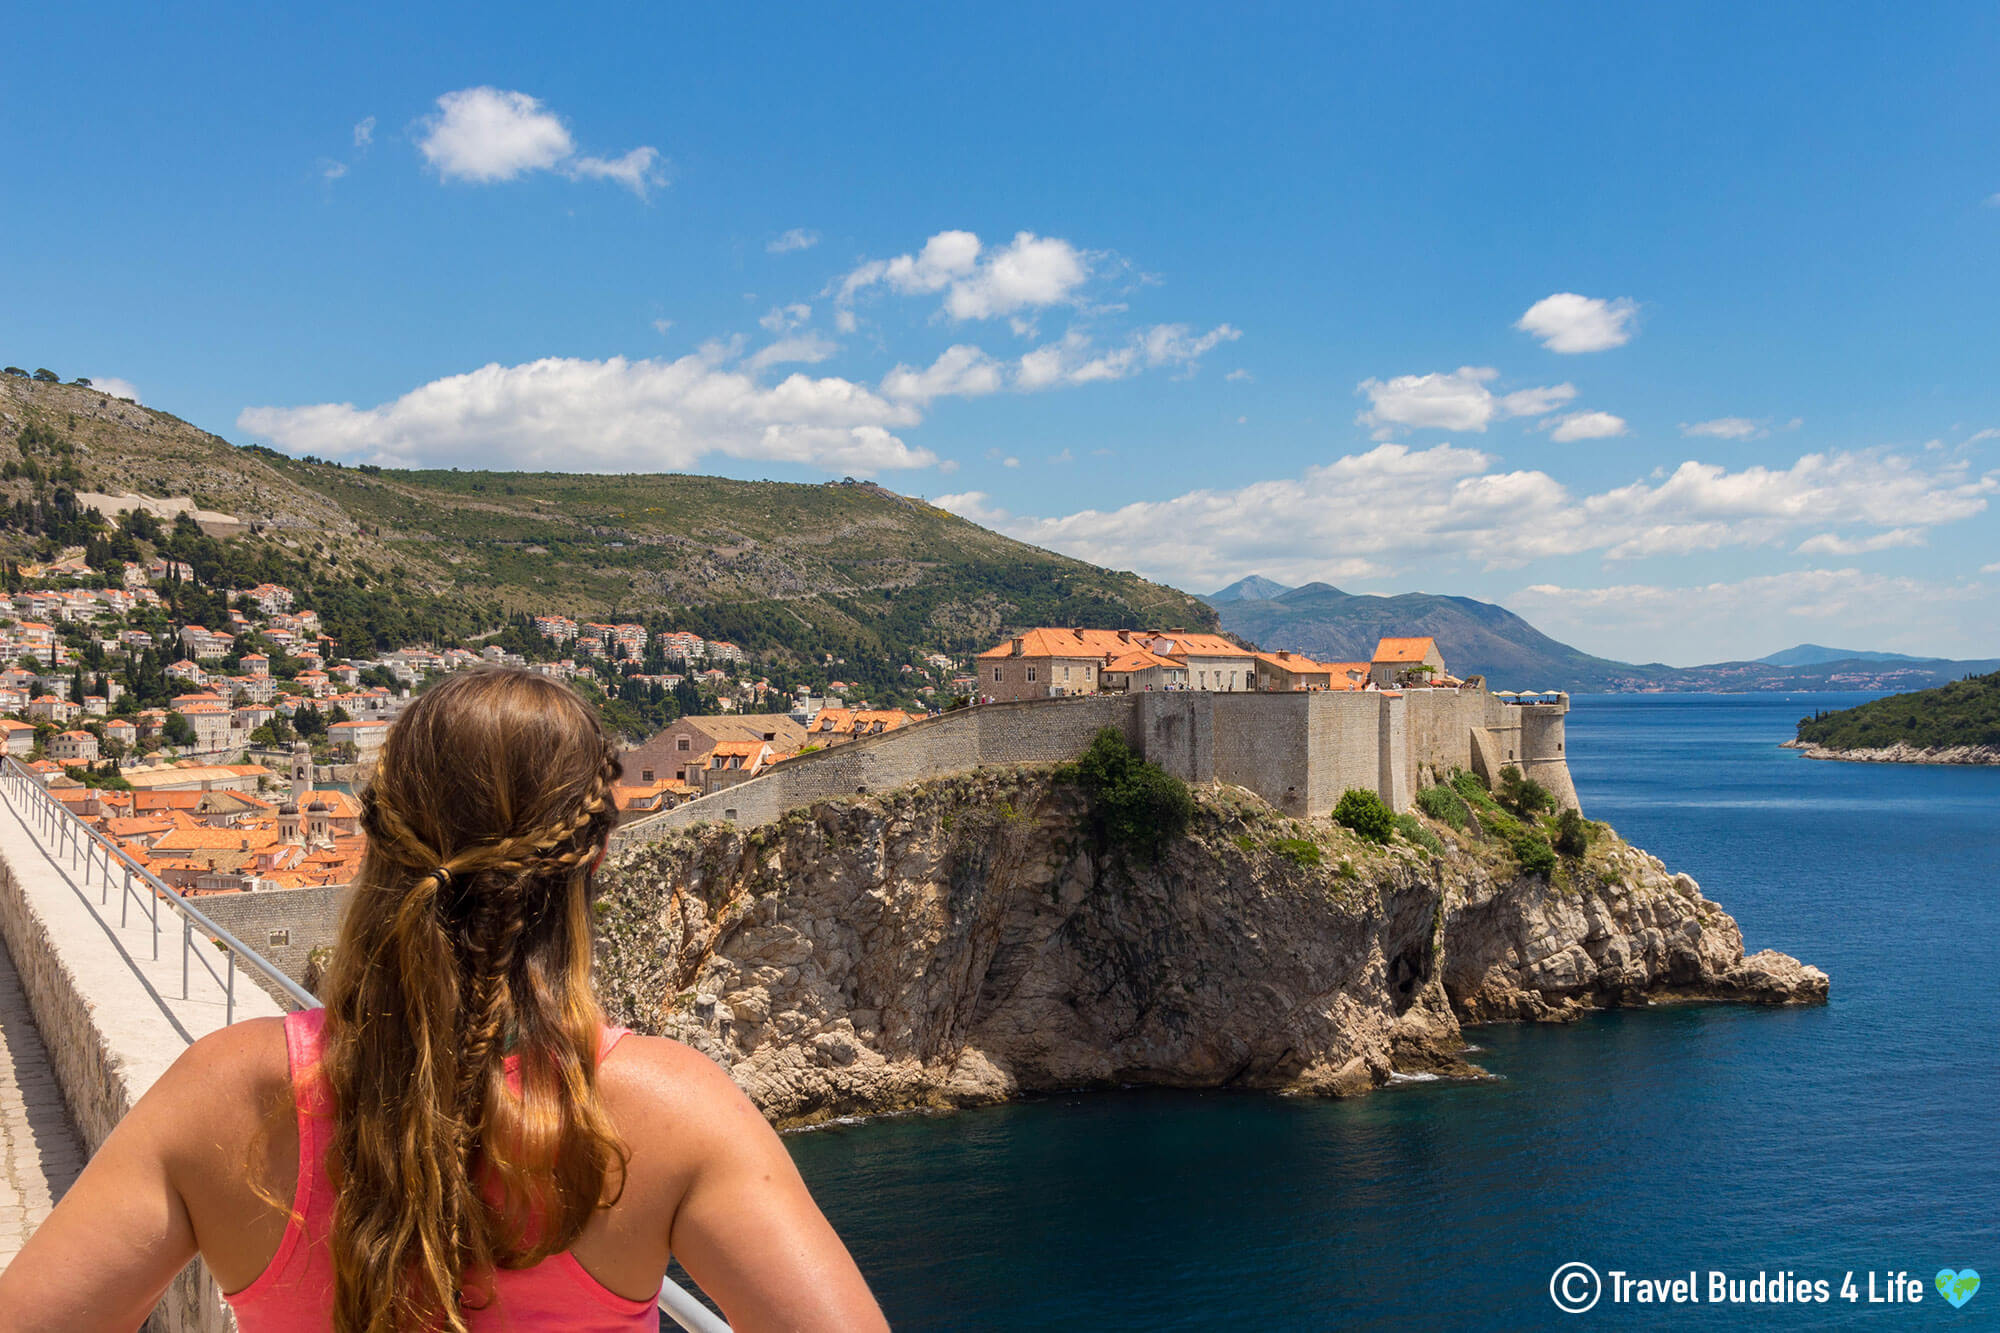 Ali Looking at Kings Landing in Dubrovnik Croatia